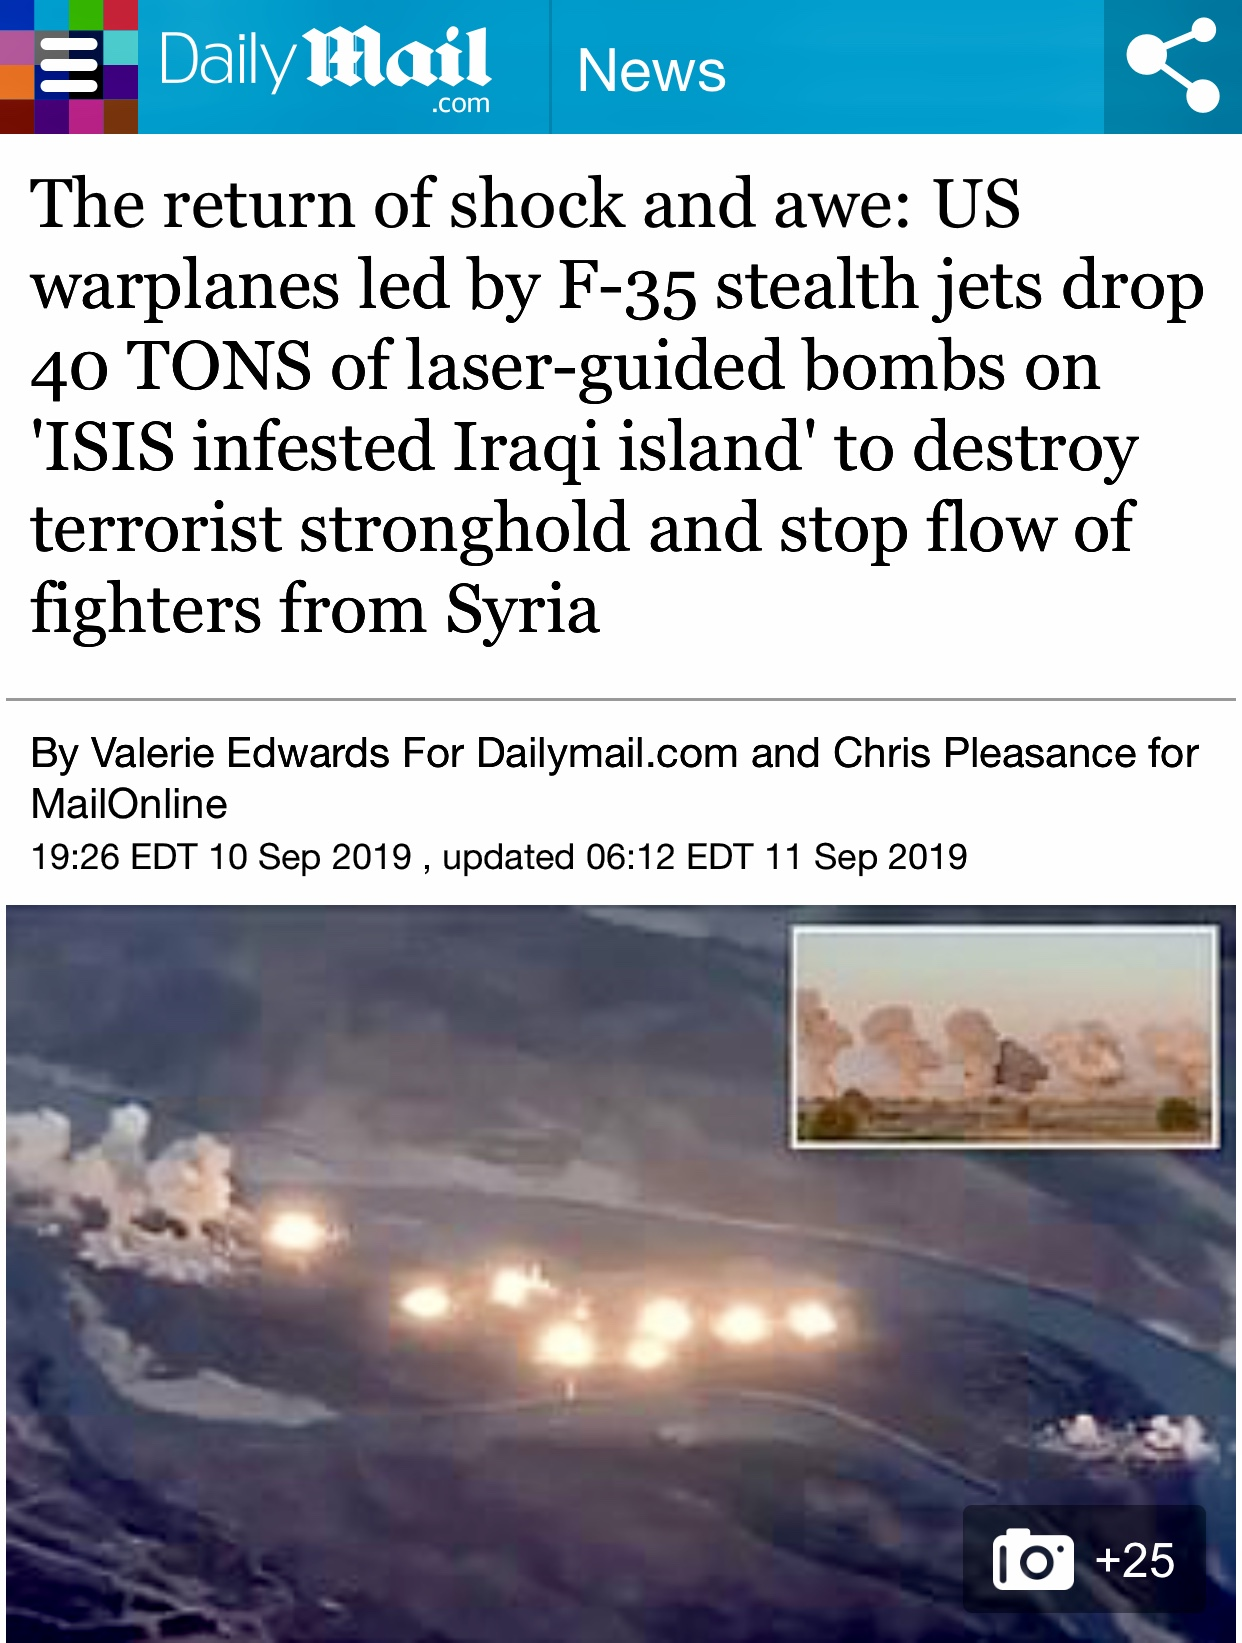 US warplanes drop 40 tons of bombs on ISIS-infested island along Tigris River | Daily Mail Online